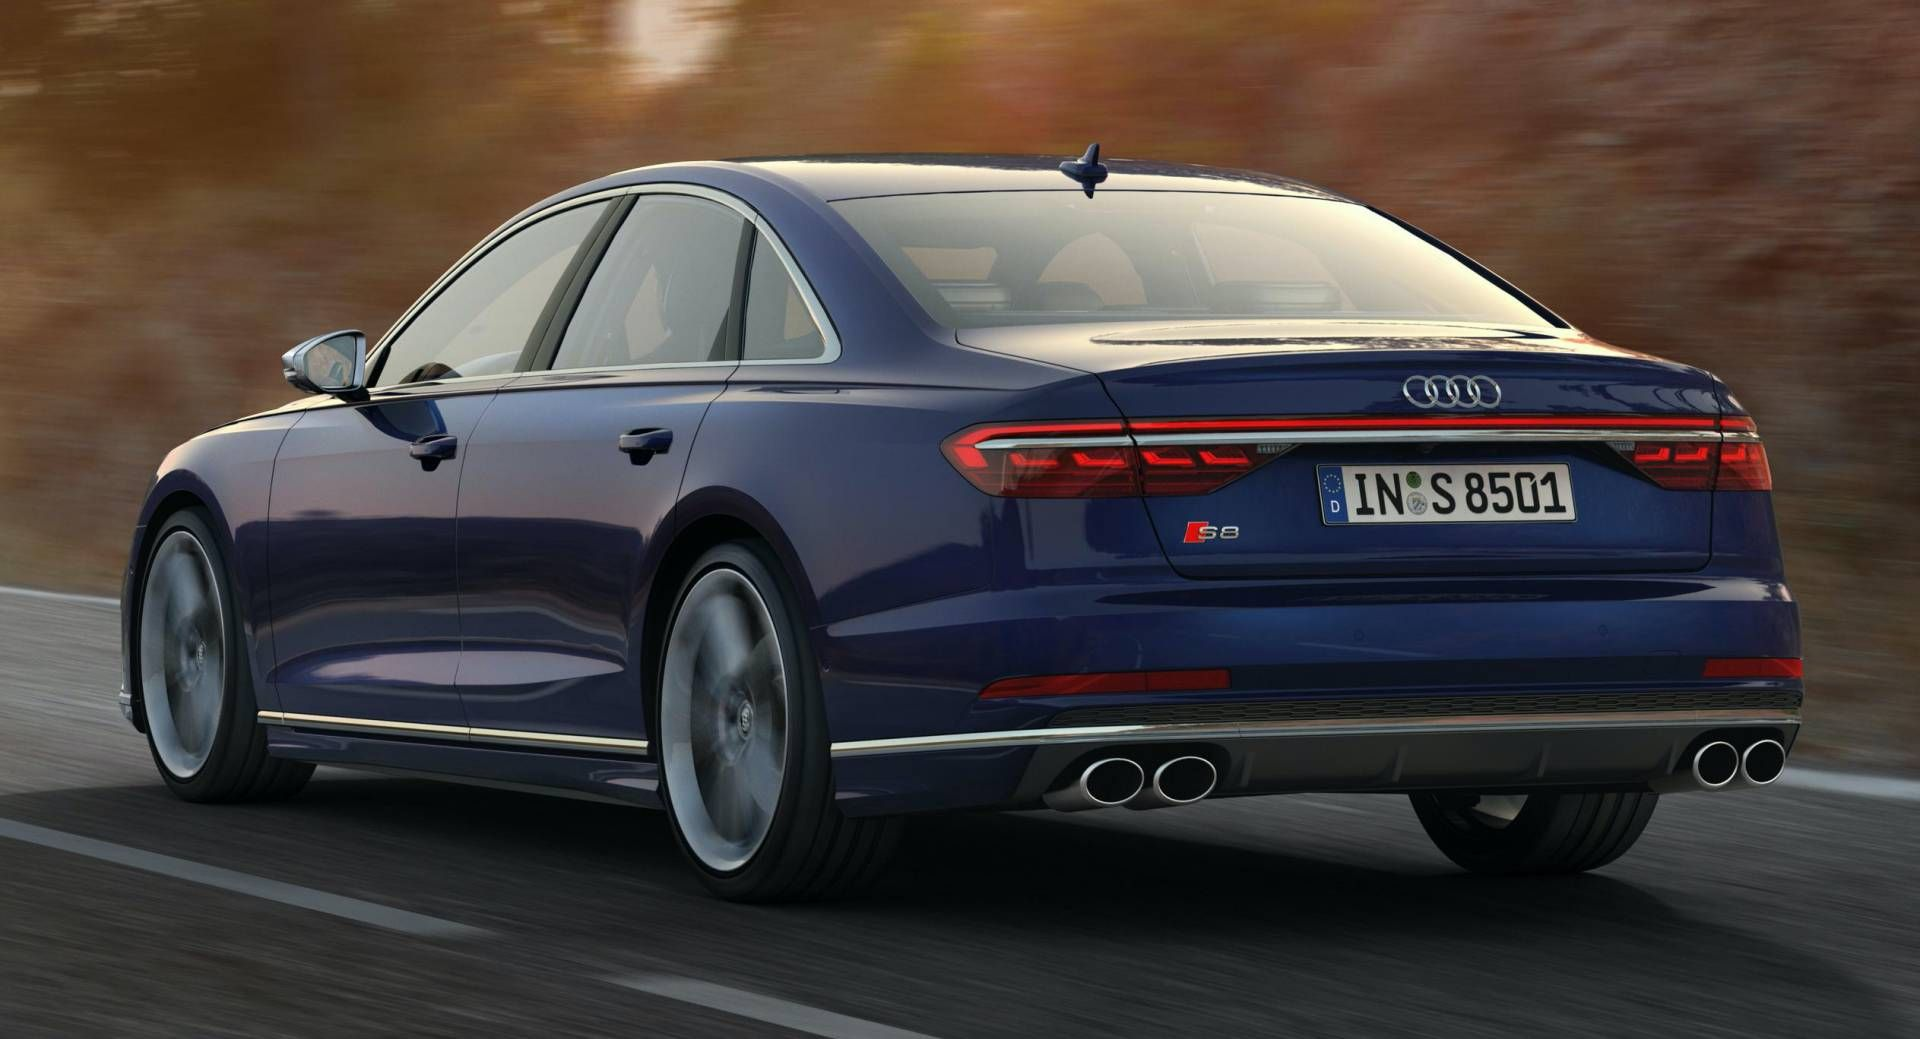 2020 Audi S8 Coming To La A8 Tfsi E Phev Confirmed For U S Audi Audia8 Audis8 Galleries Hybrids Laautoshow Newcars Phev Prices Usa Audi Audi A8 Car